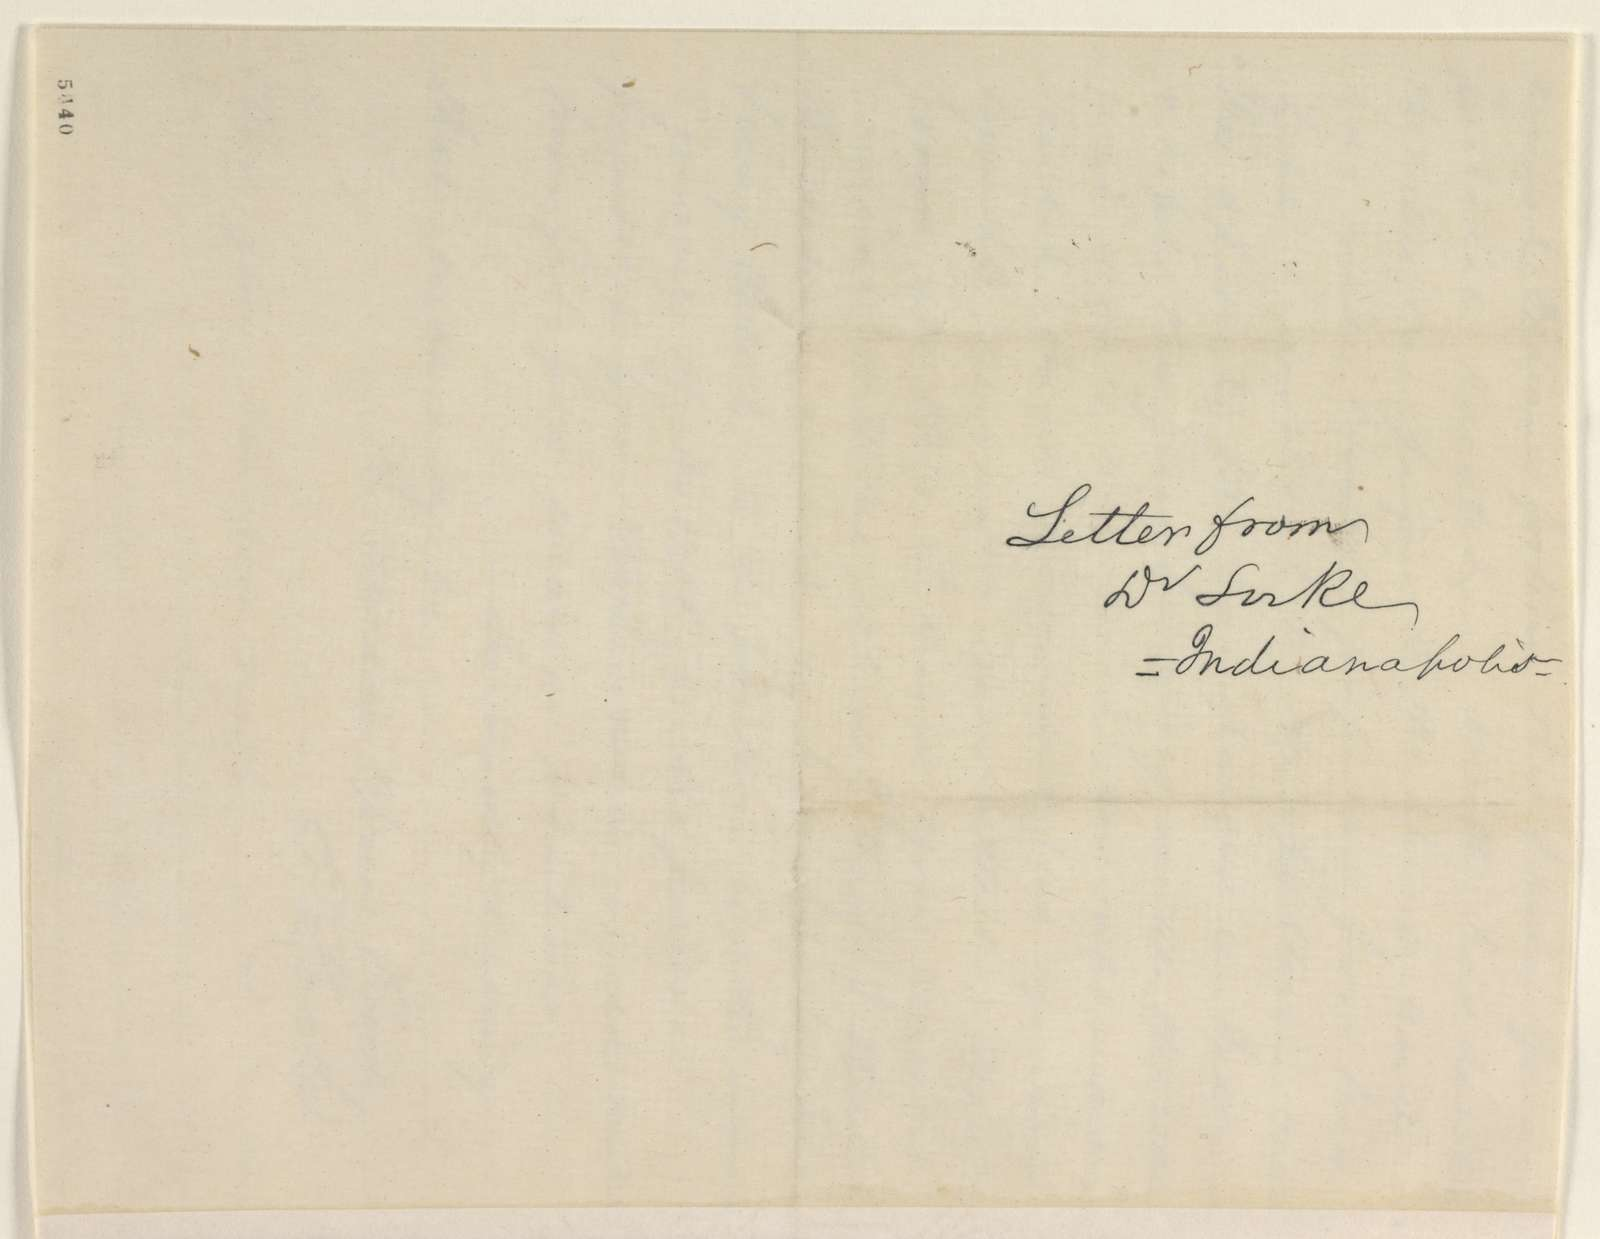 Abraham Lincoln papers: Series 1. General Correspondence. 1833-1916: Eric Locke to David Davis, Wednesday, December 26, 1860 (Recommends Caleb Smith)